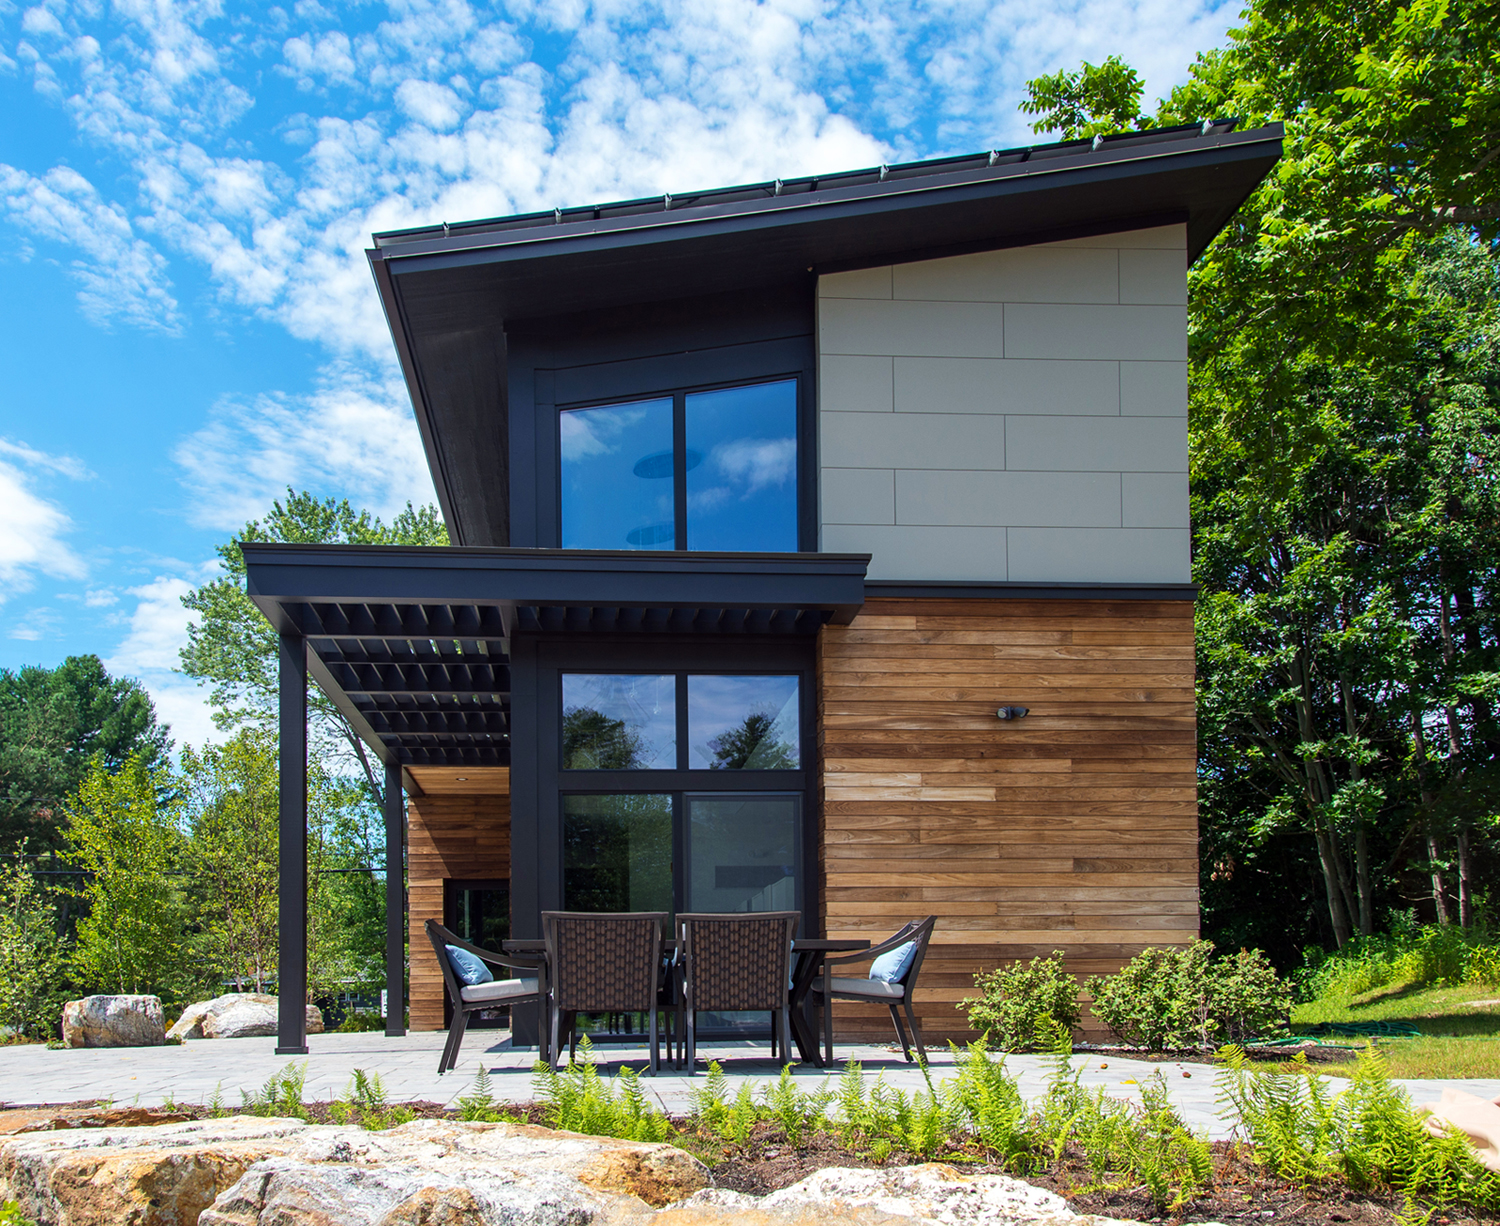 Viridescent building net zero energy coalition for Building a house in maine